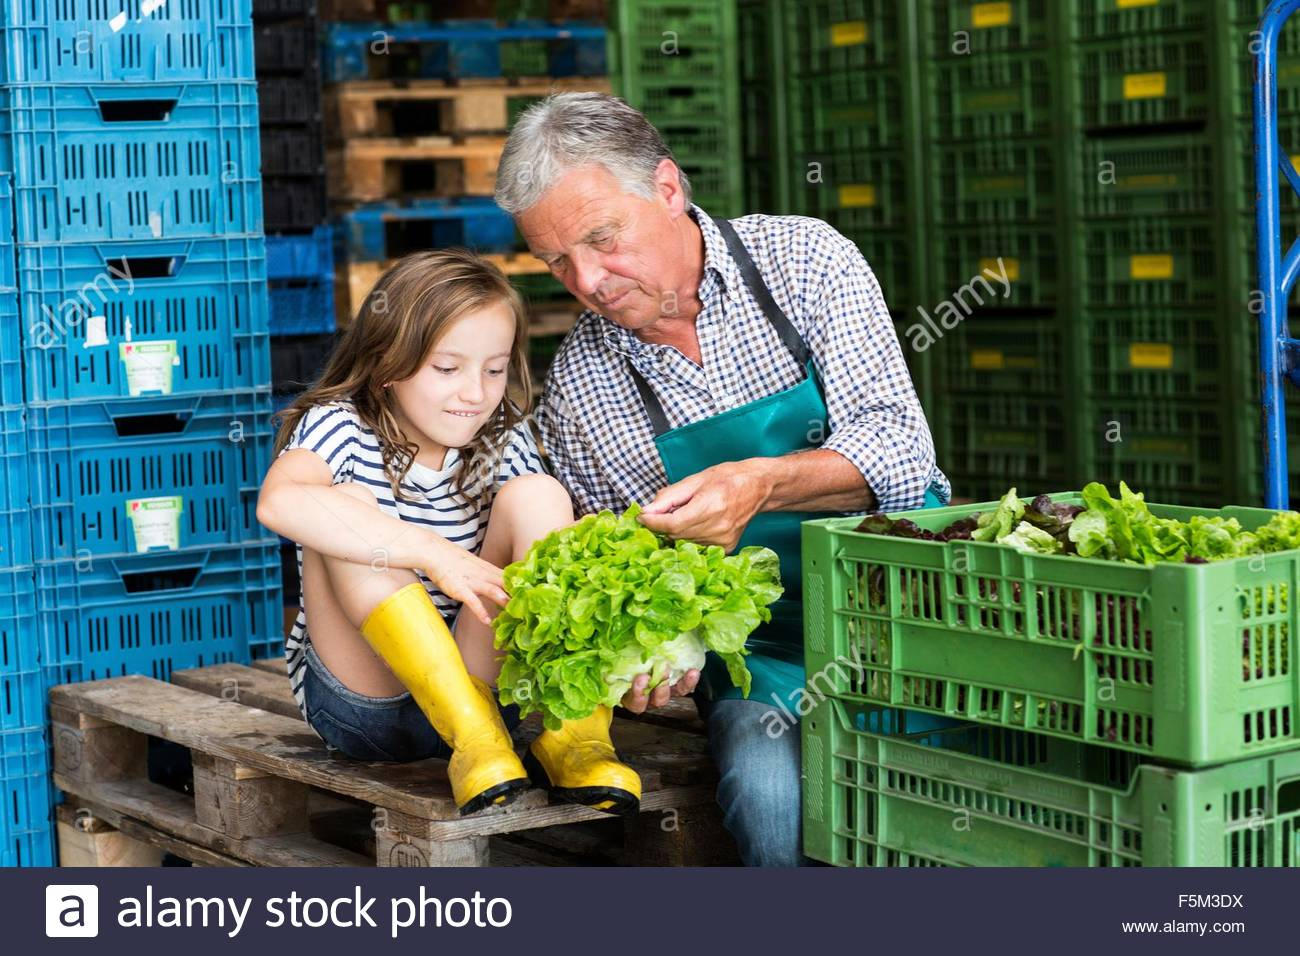 Grandfather and granddaughter checking quality of lettuce - Stock Image